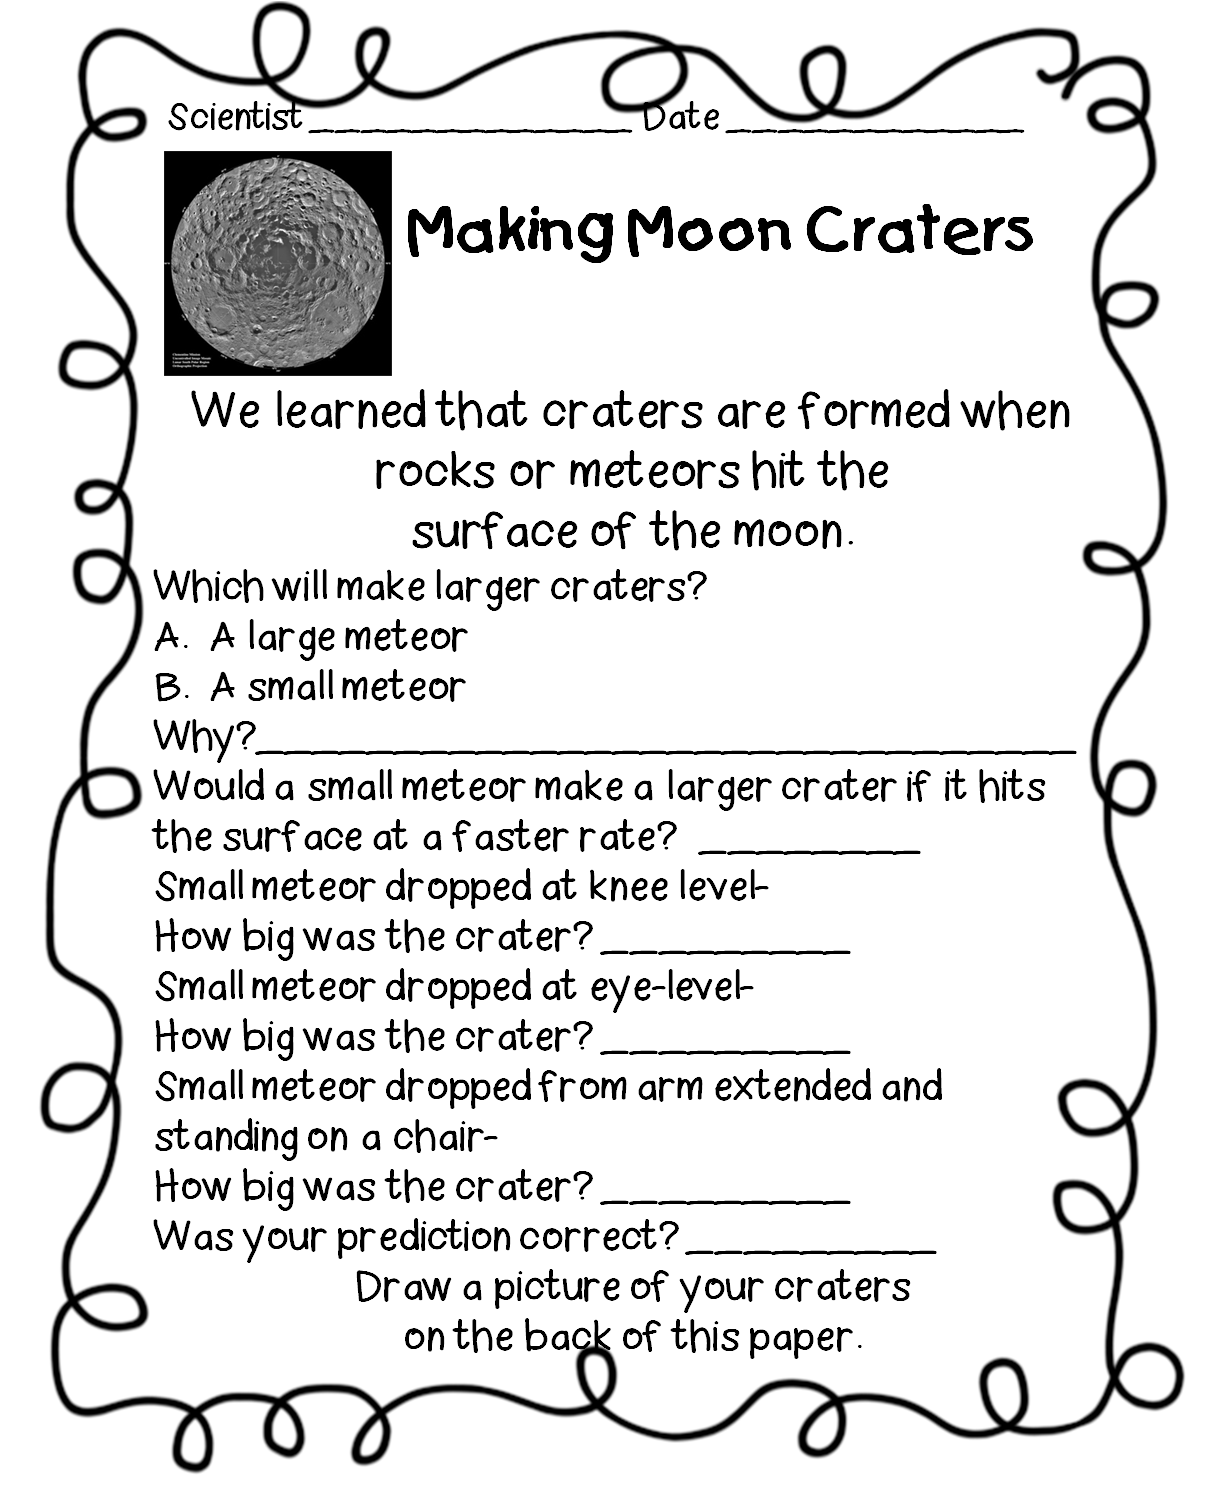 Kindergarten Science Worksheets Night And Day crayon bits a – Day and Night Worksheets for Kindergarten